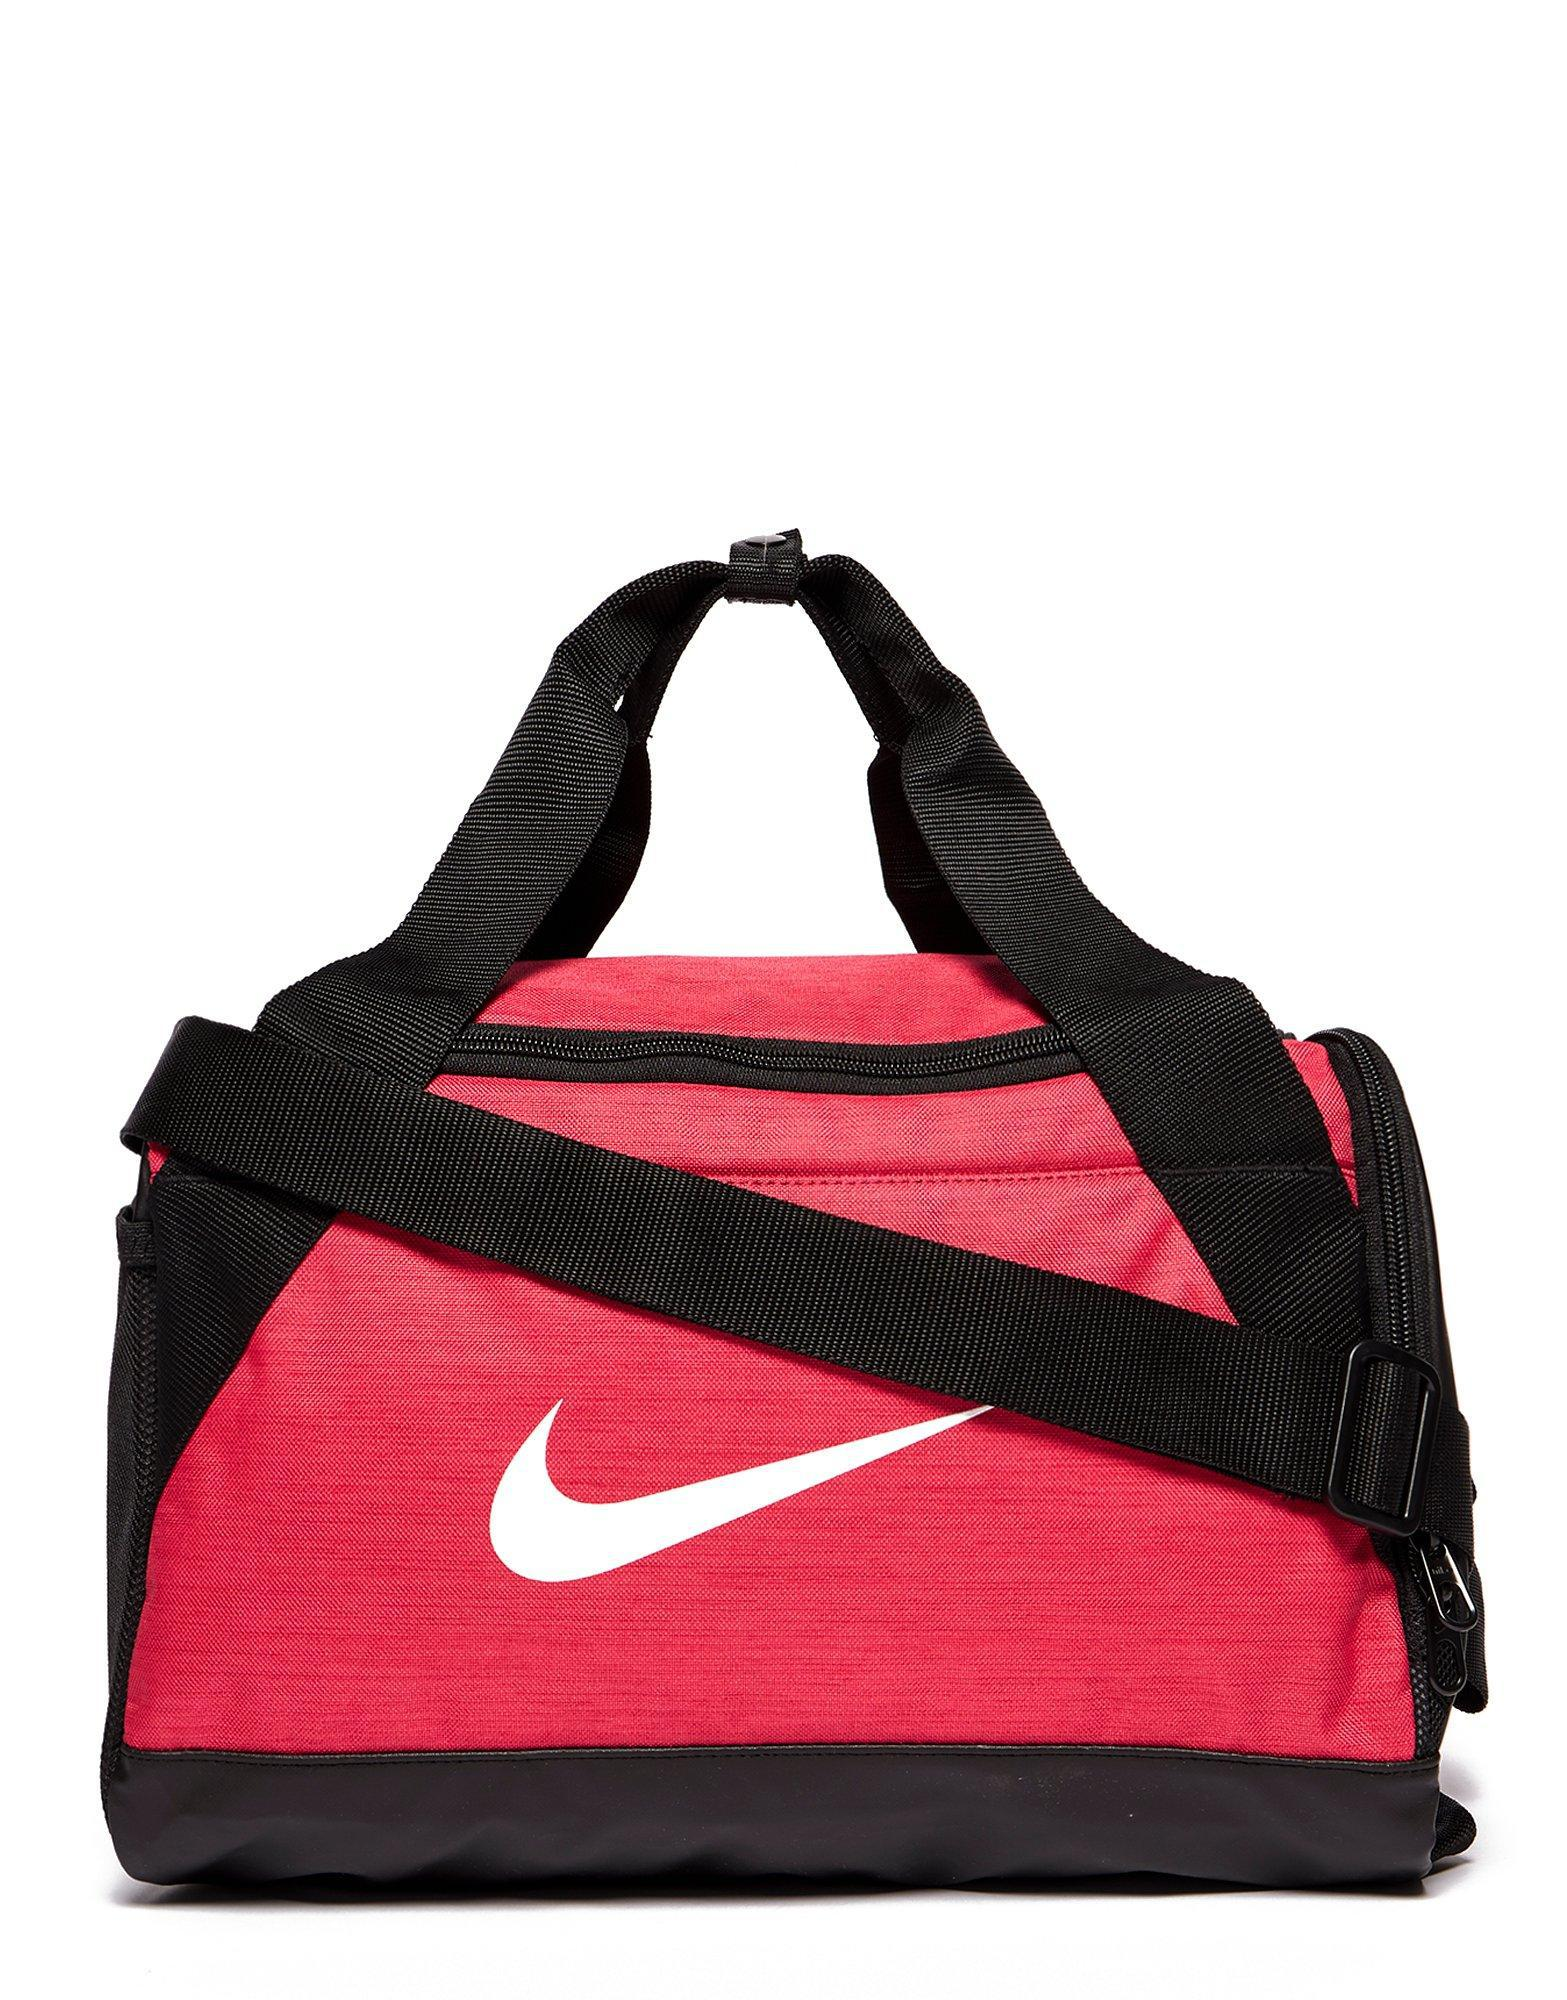 5c70ae9bb7c7 Lyst - Nike Extra Small Brasilia Bag in Pink for Men